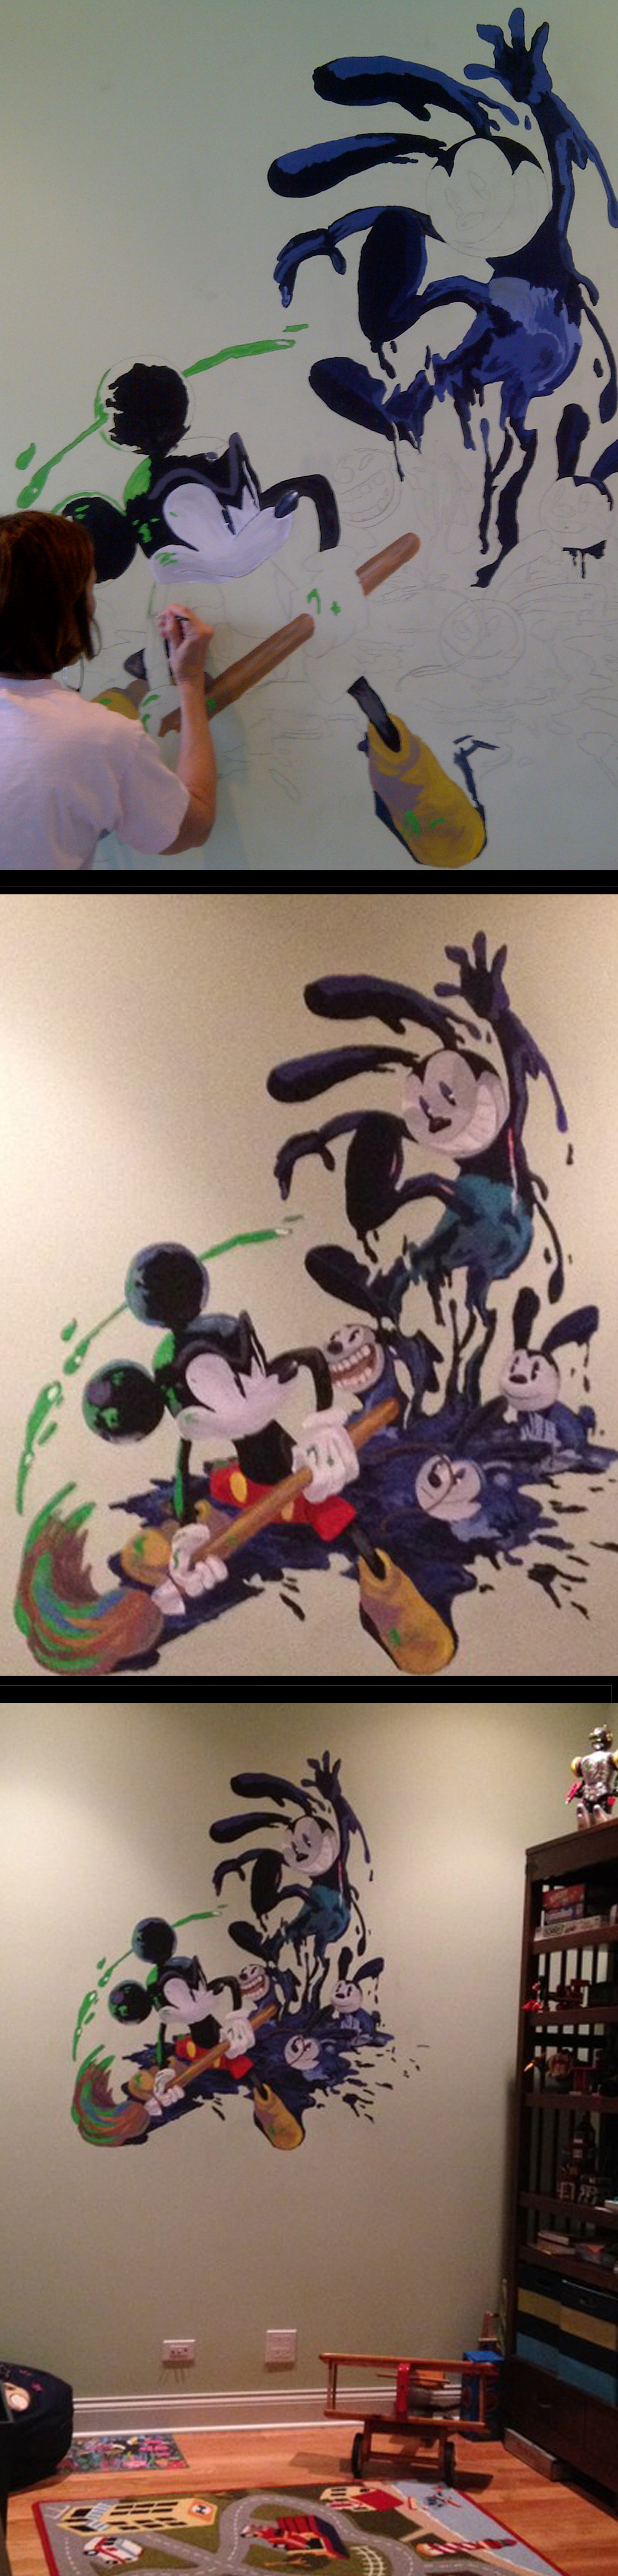 Mural for a boy's bedroom: Epic Mickey (disney mickey mouse) and Oswald. Fan art found on the internet, printed onto a transparency, projected onto the wall, traced, and painted.